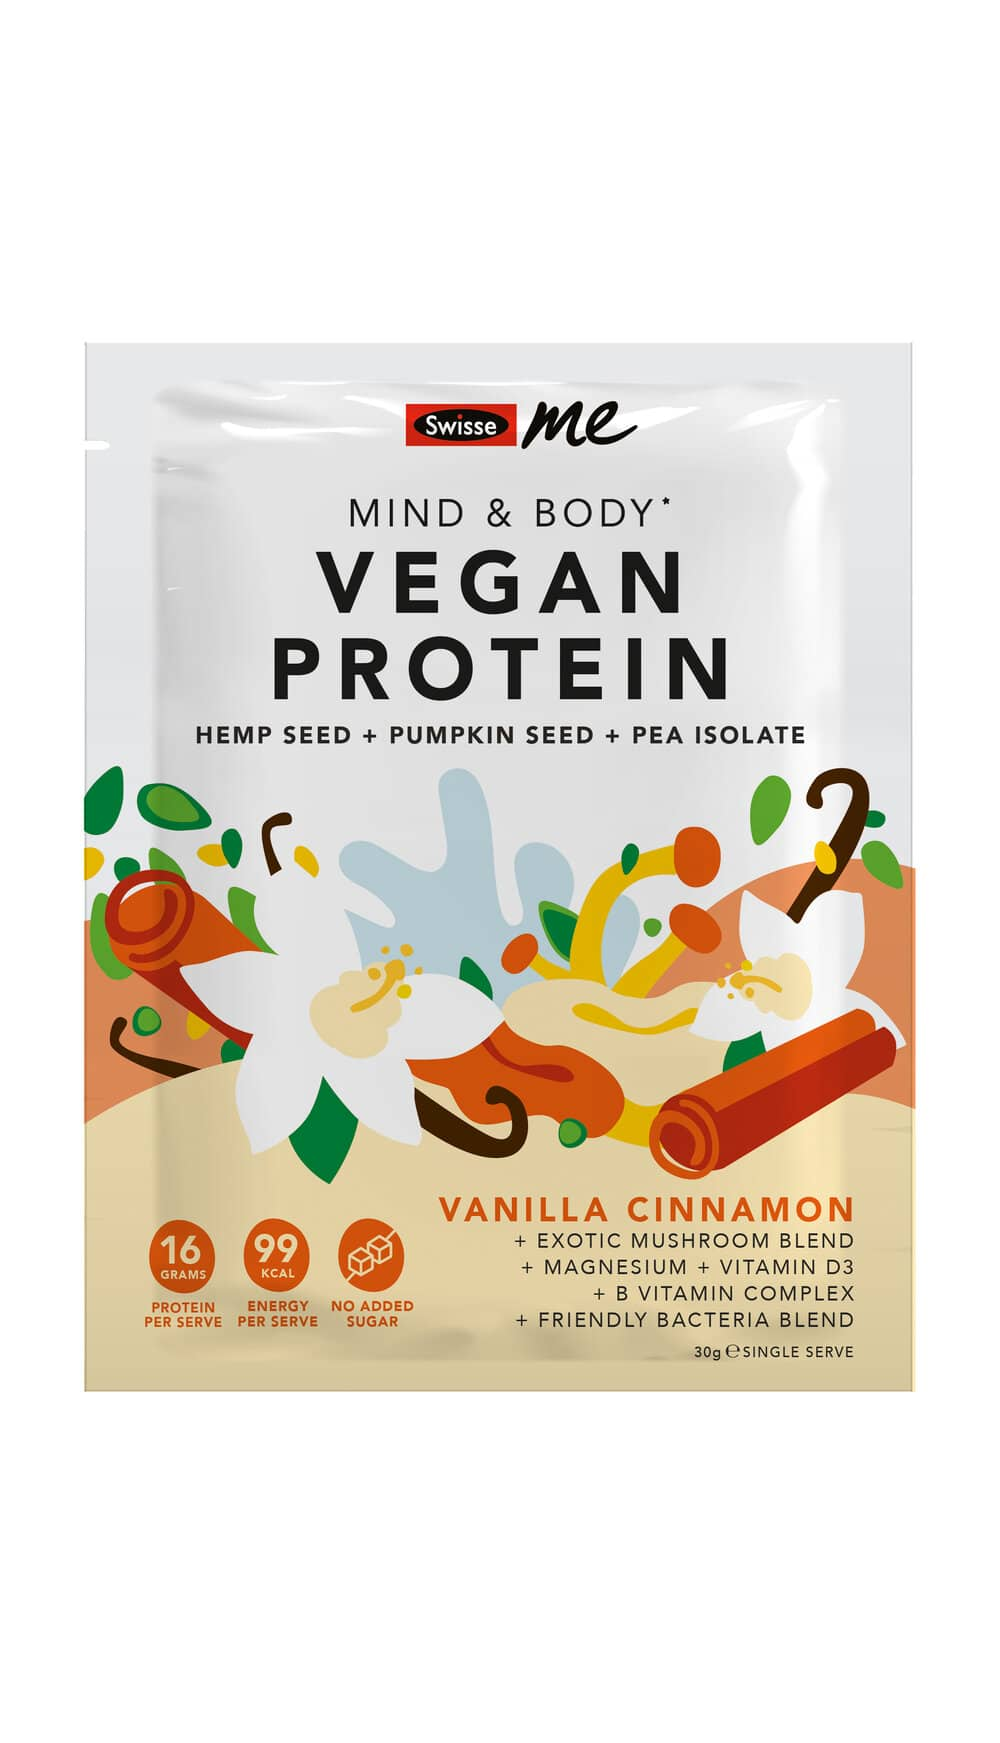 Swisse Me Launches Two New Vegan Protein Products – Powder And Balls!